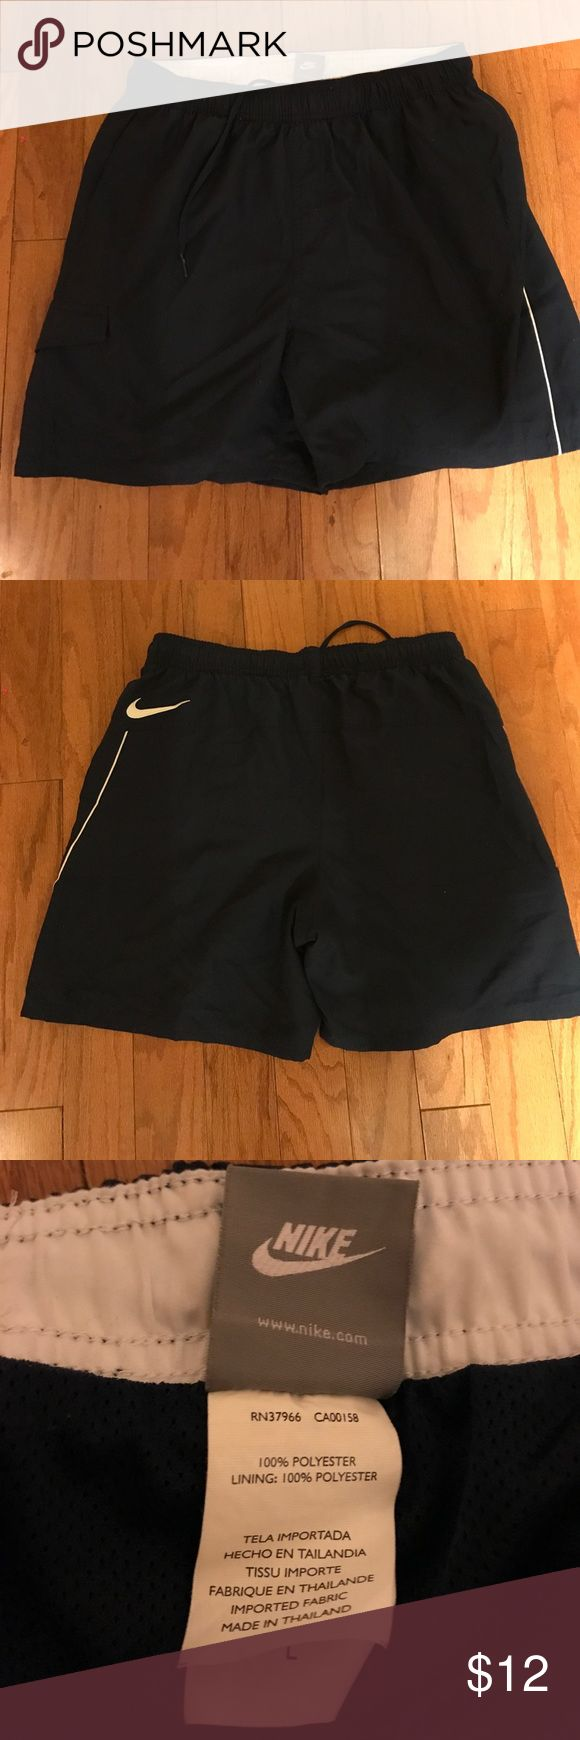 Nike Men's Bathing Suit Size Large Only worn once. Size Men's Large. From a smoke free pet free home. Nike Swim Swim Trunks